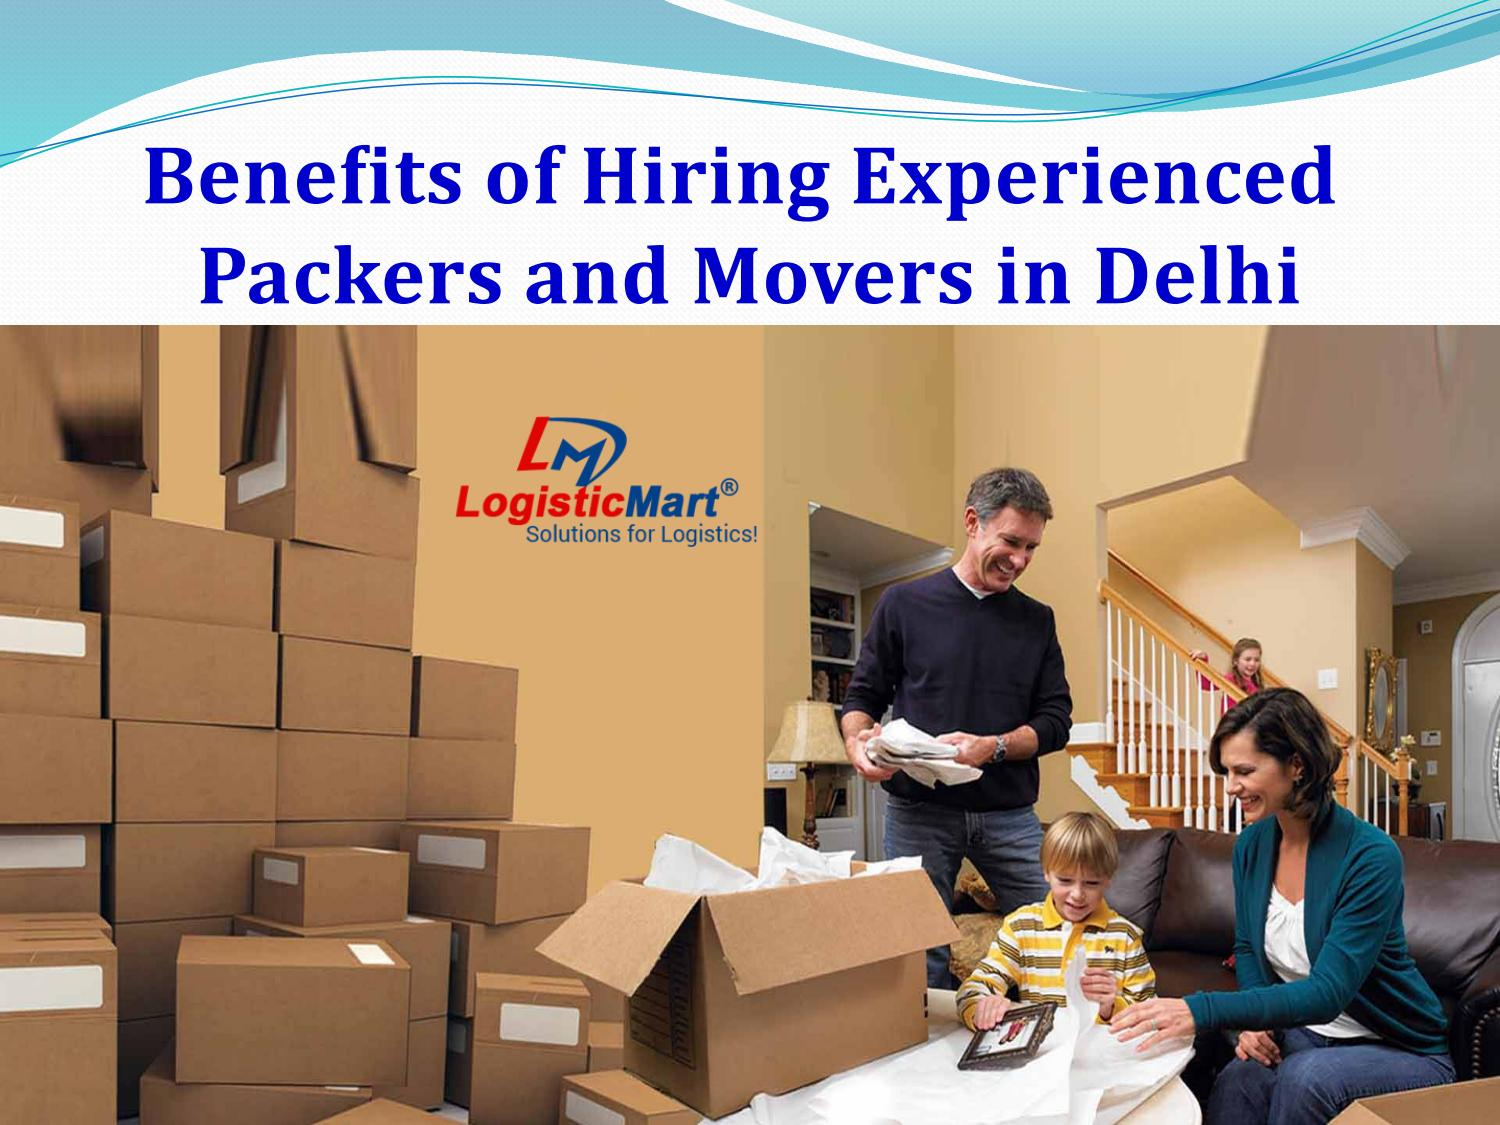 Packers and Movers in Delhi - LogisticMart